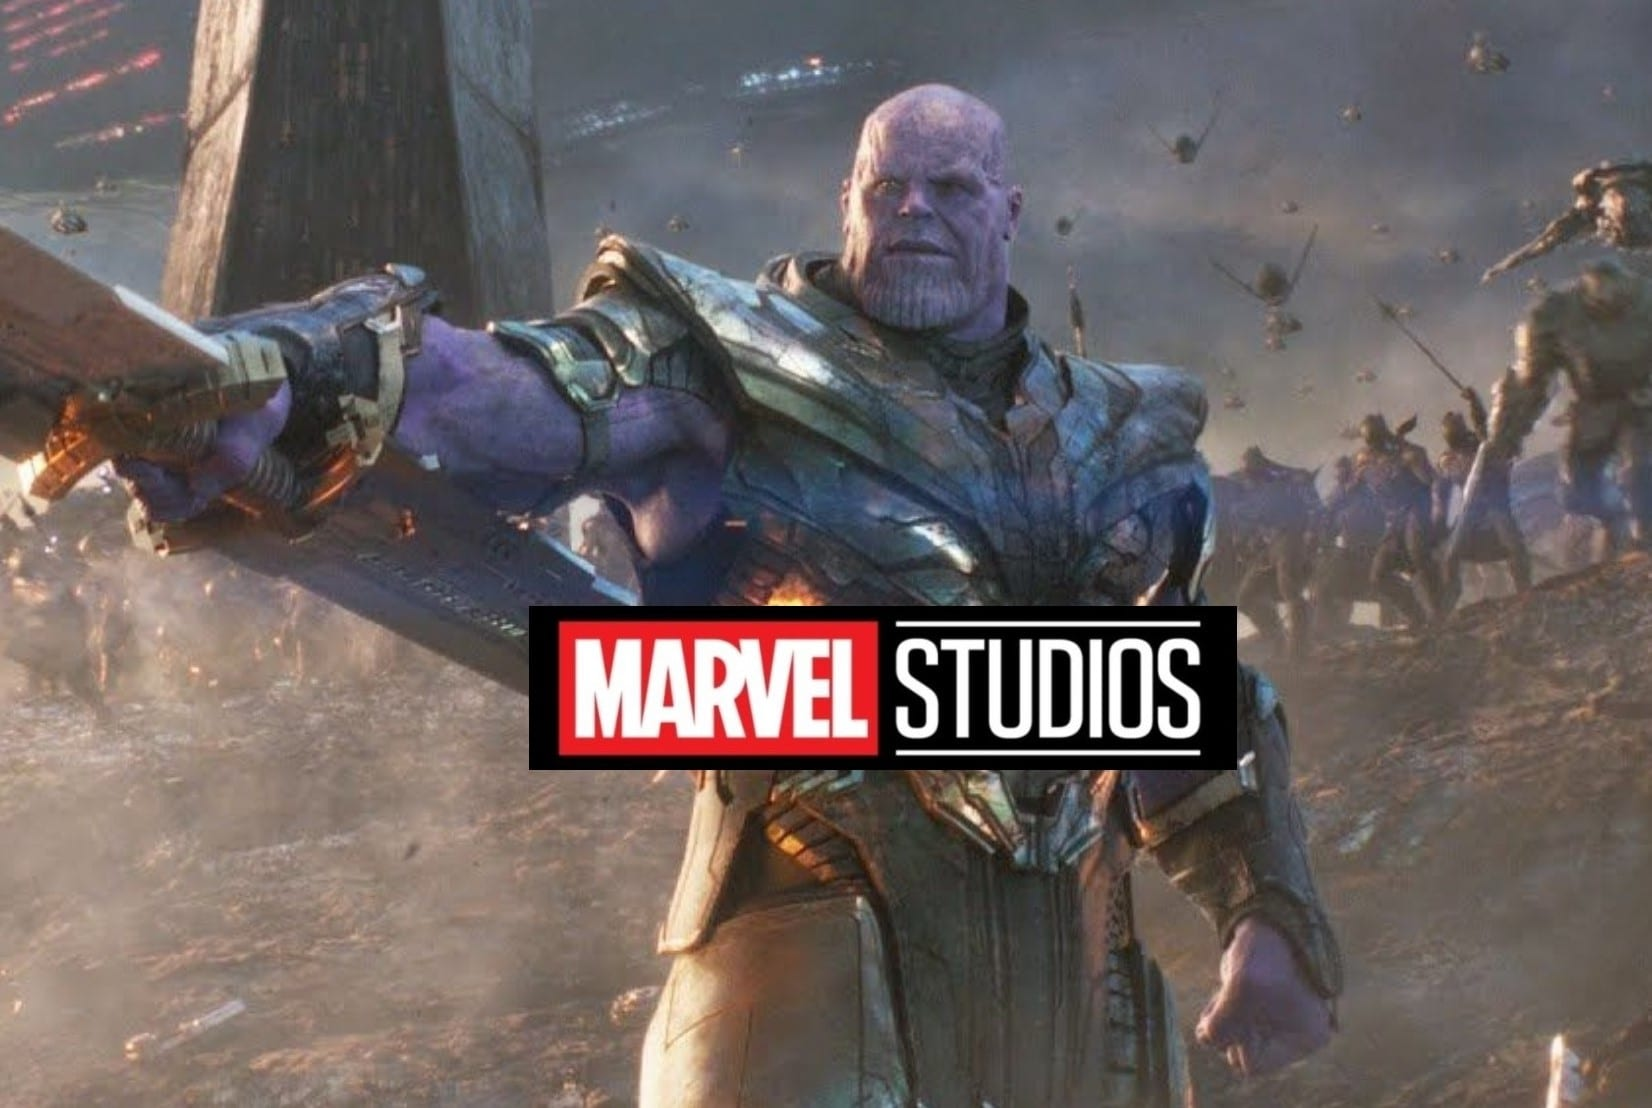 Rumor: Marvel Studios is discussing ways to bring Thanos back into the MCU